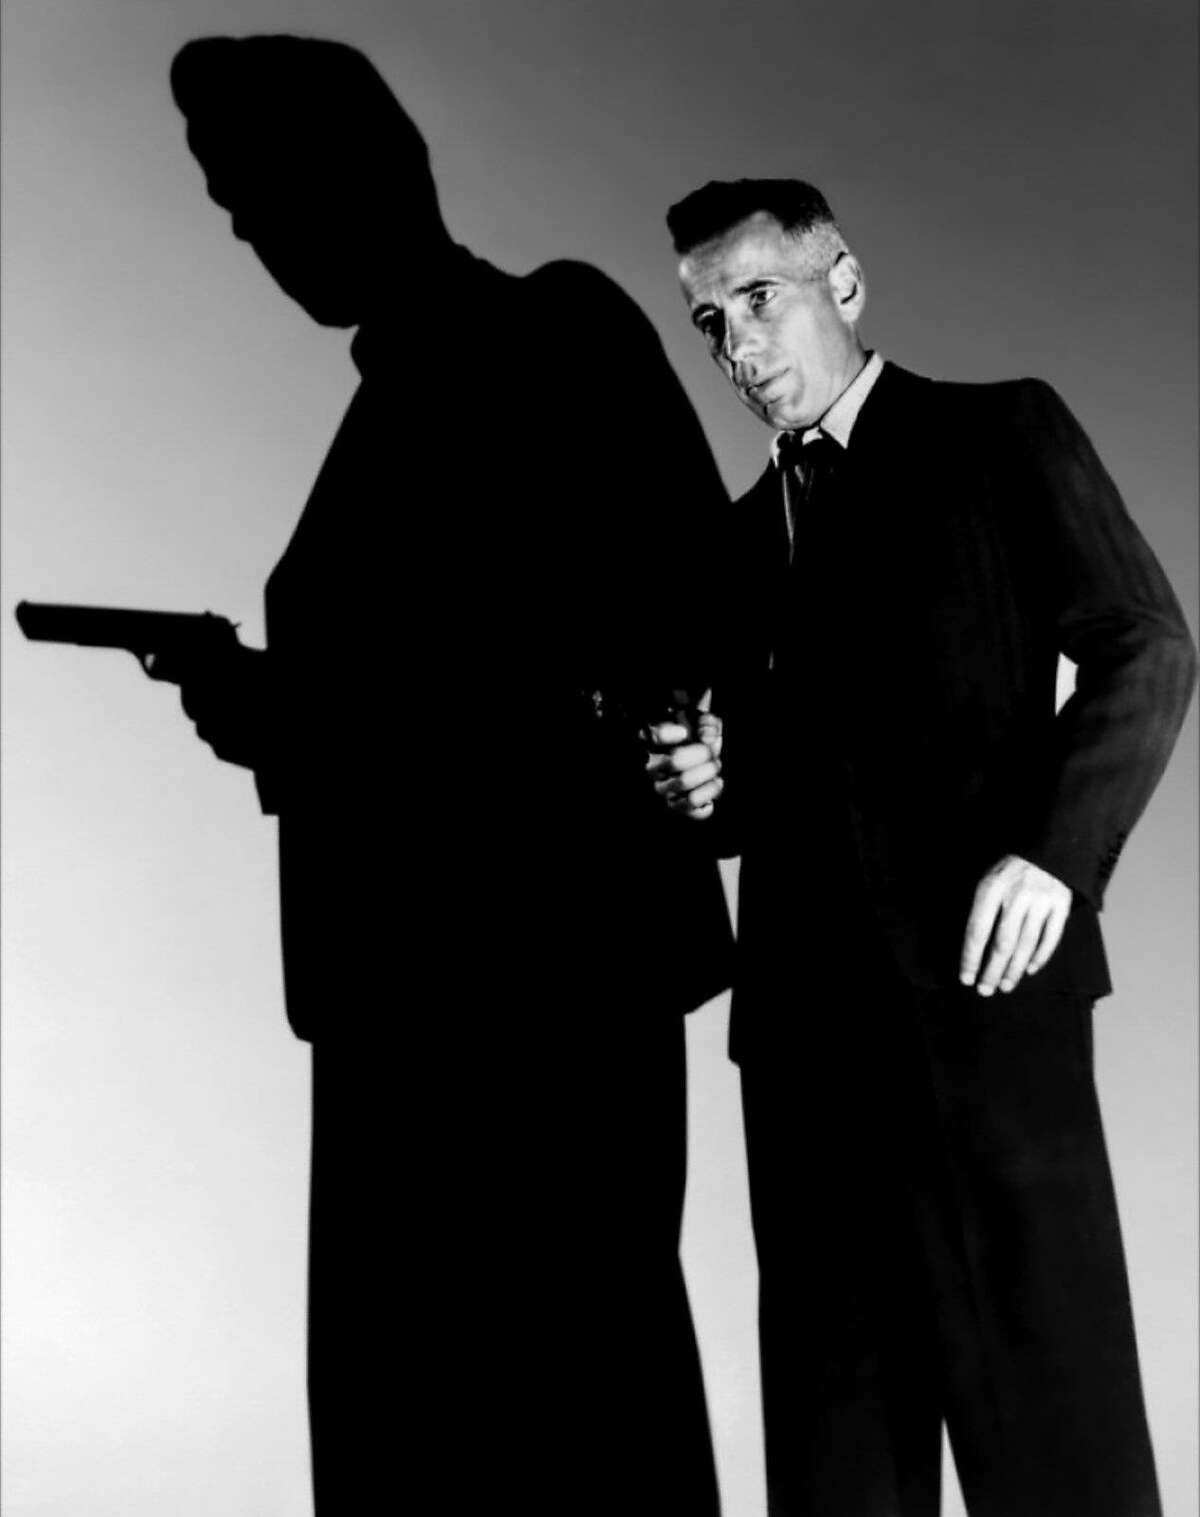 """Humphrey Bogart in a promotional still for Raoul Walsh's 1941 proto-noir """"High Sierra"""", playing at the Stanford Theatre this summer at the Warner Bros. retrospective."""